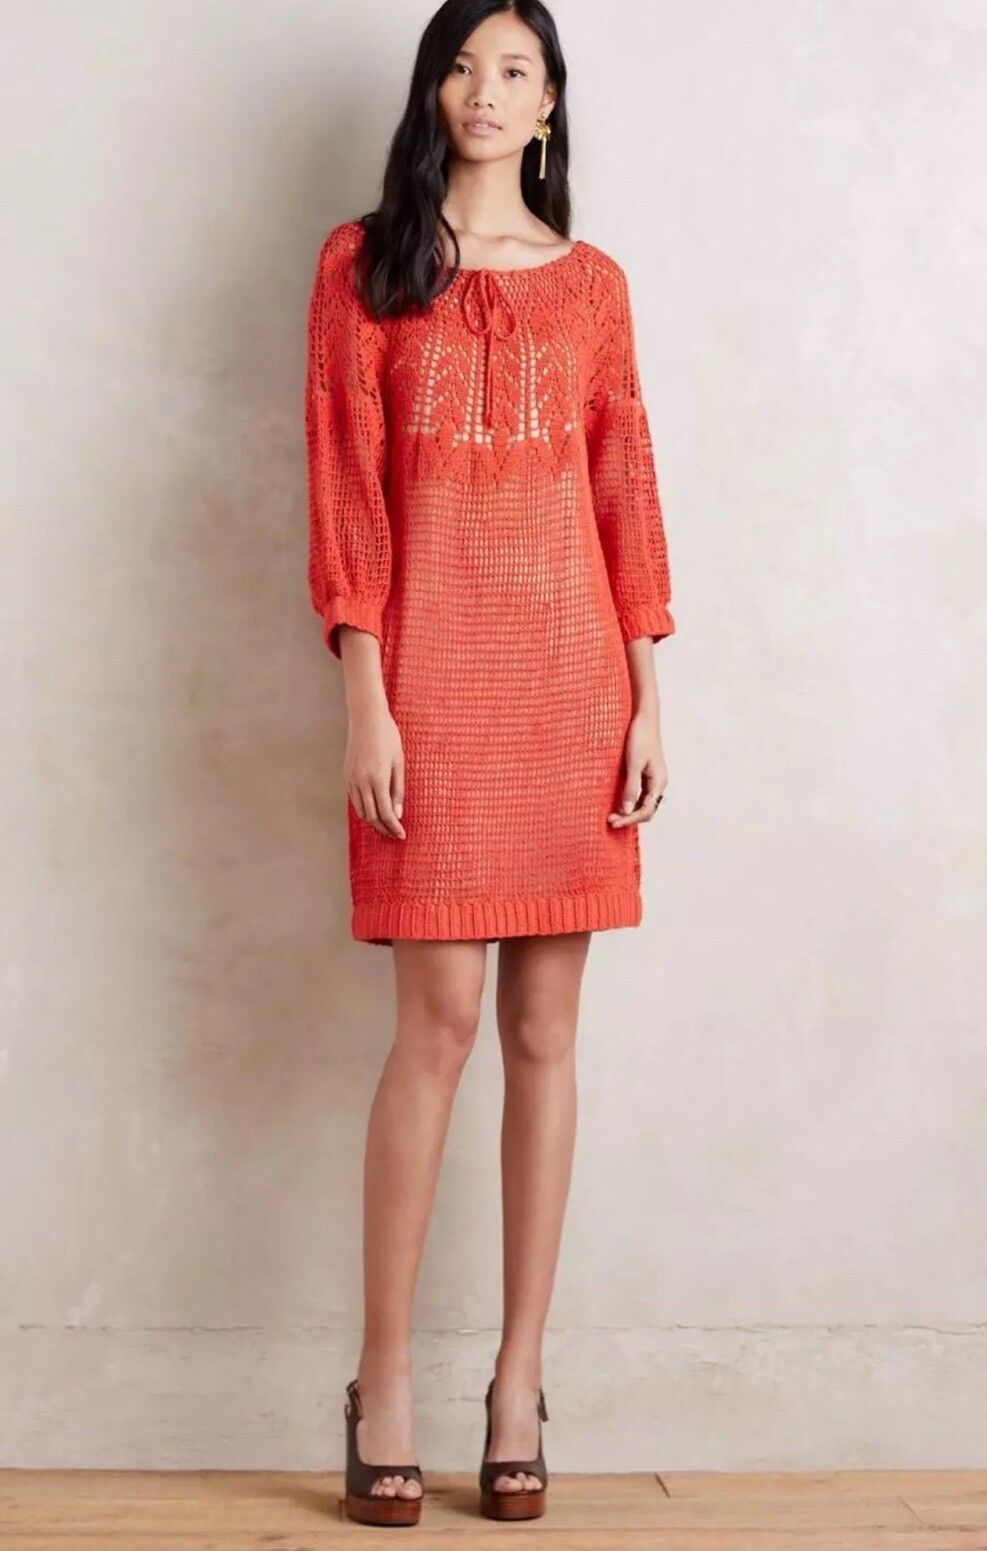 NEW Anthropologie Kgoldvilas Red Crochet Isabel Dress Size Small 4 6